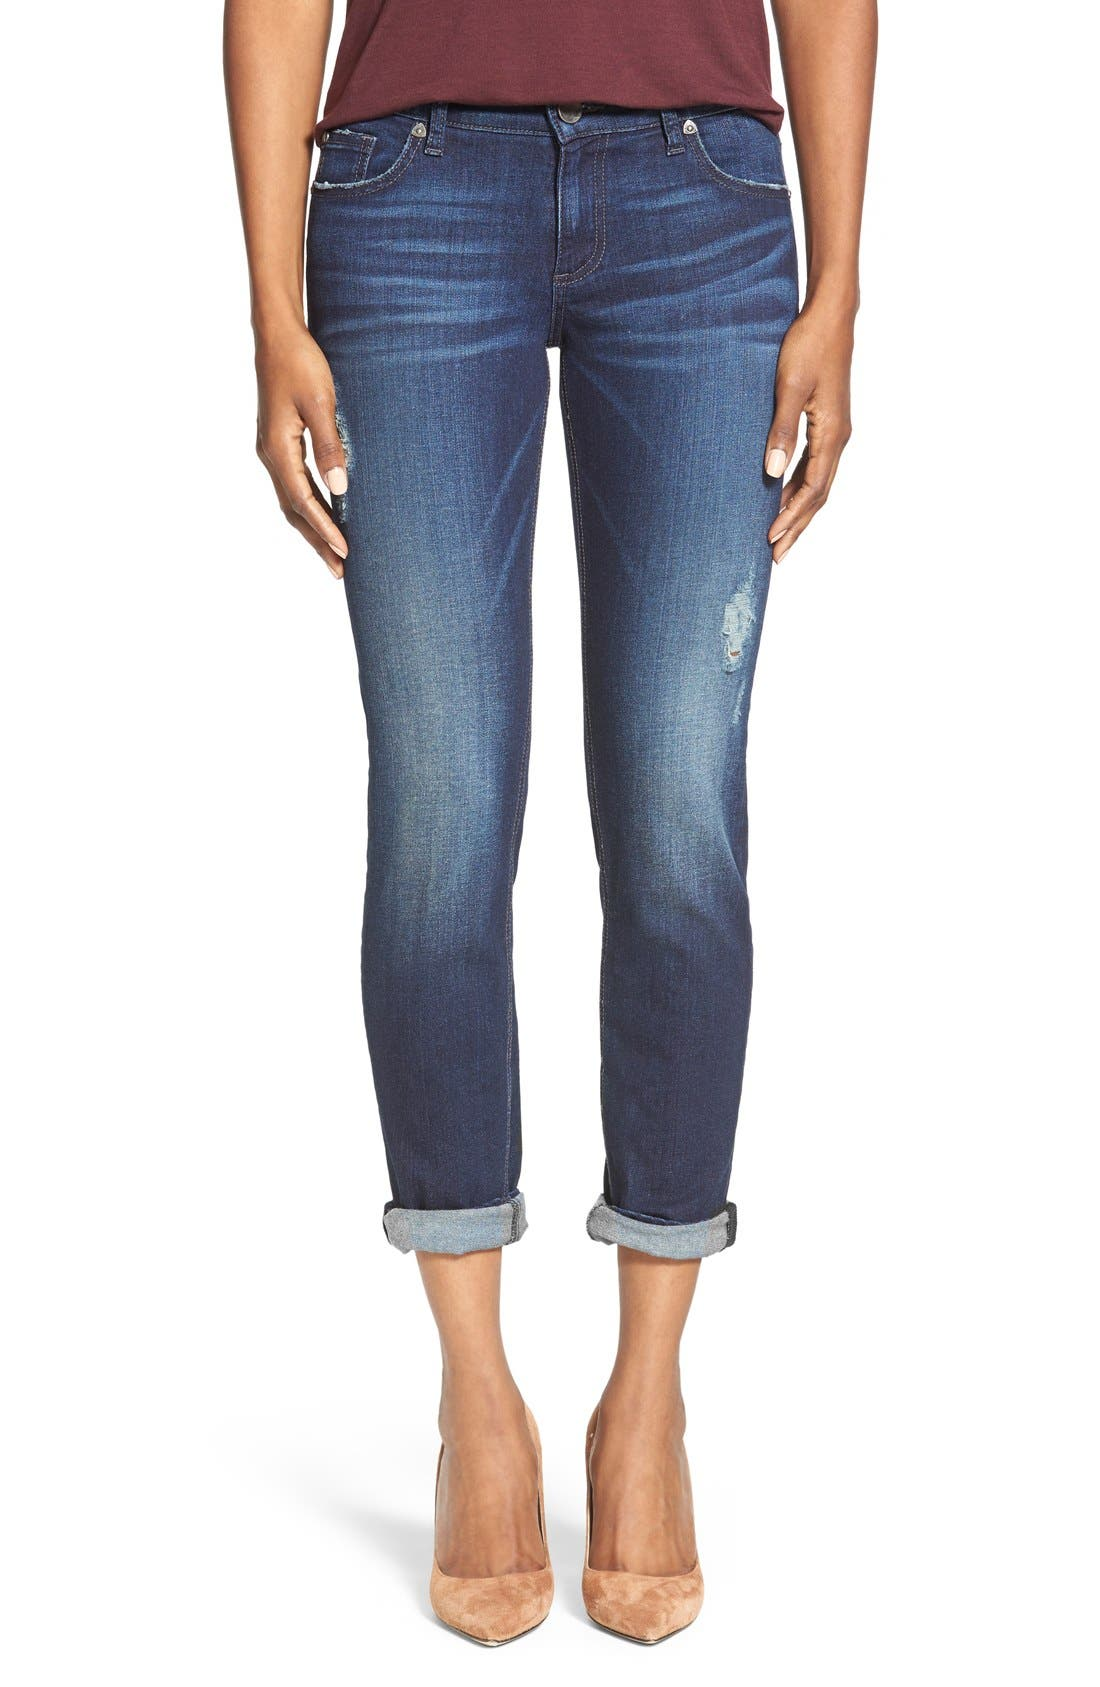 Alternate Image 1 Selected - KUT from the Kloth 'Catherine' Boyfriend Jeans (Luxury)